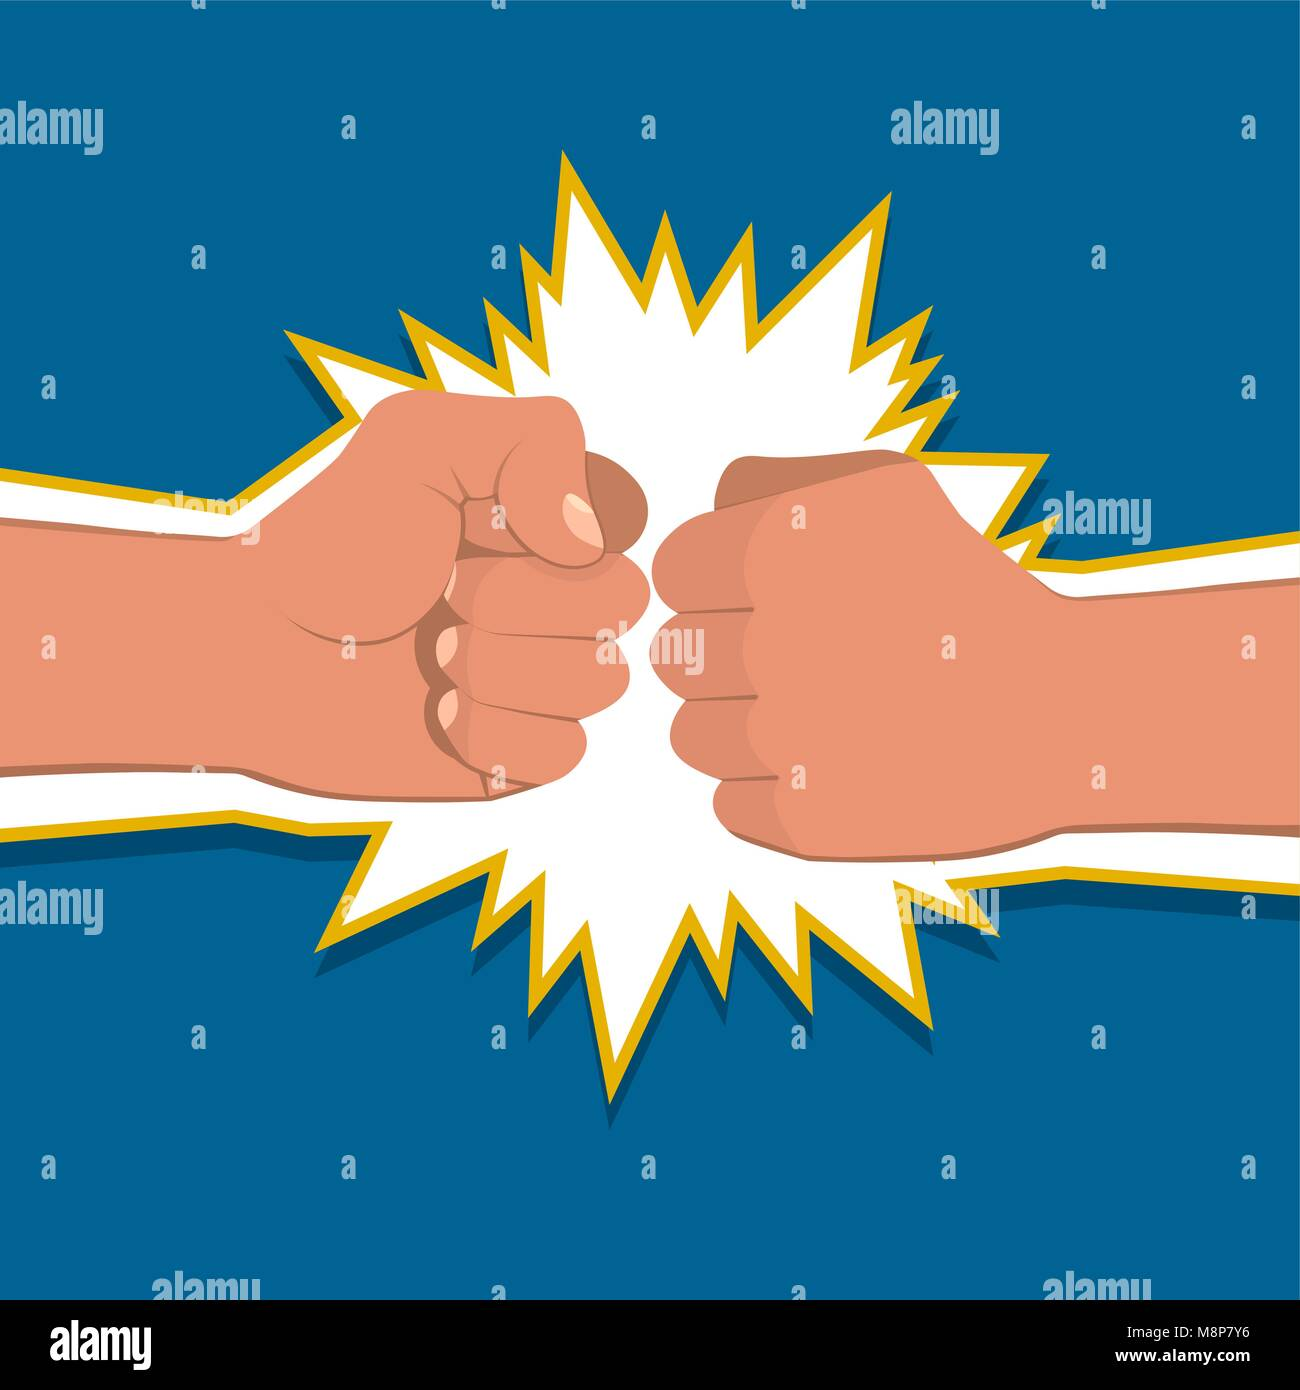 Two clenched fists in air punching. Vector illustration with two hands. Concept of aggression and violence. War - Stock Vector